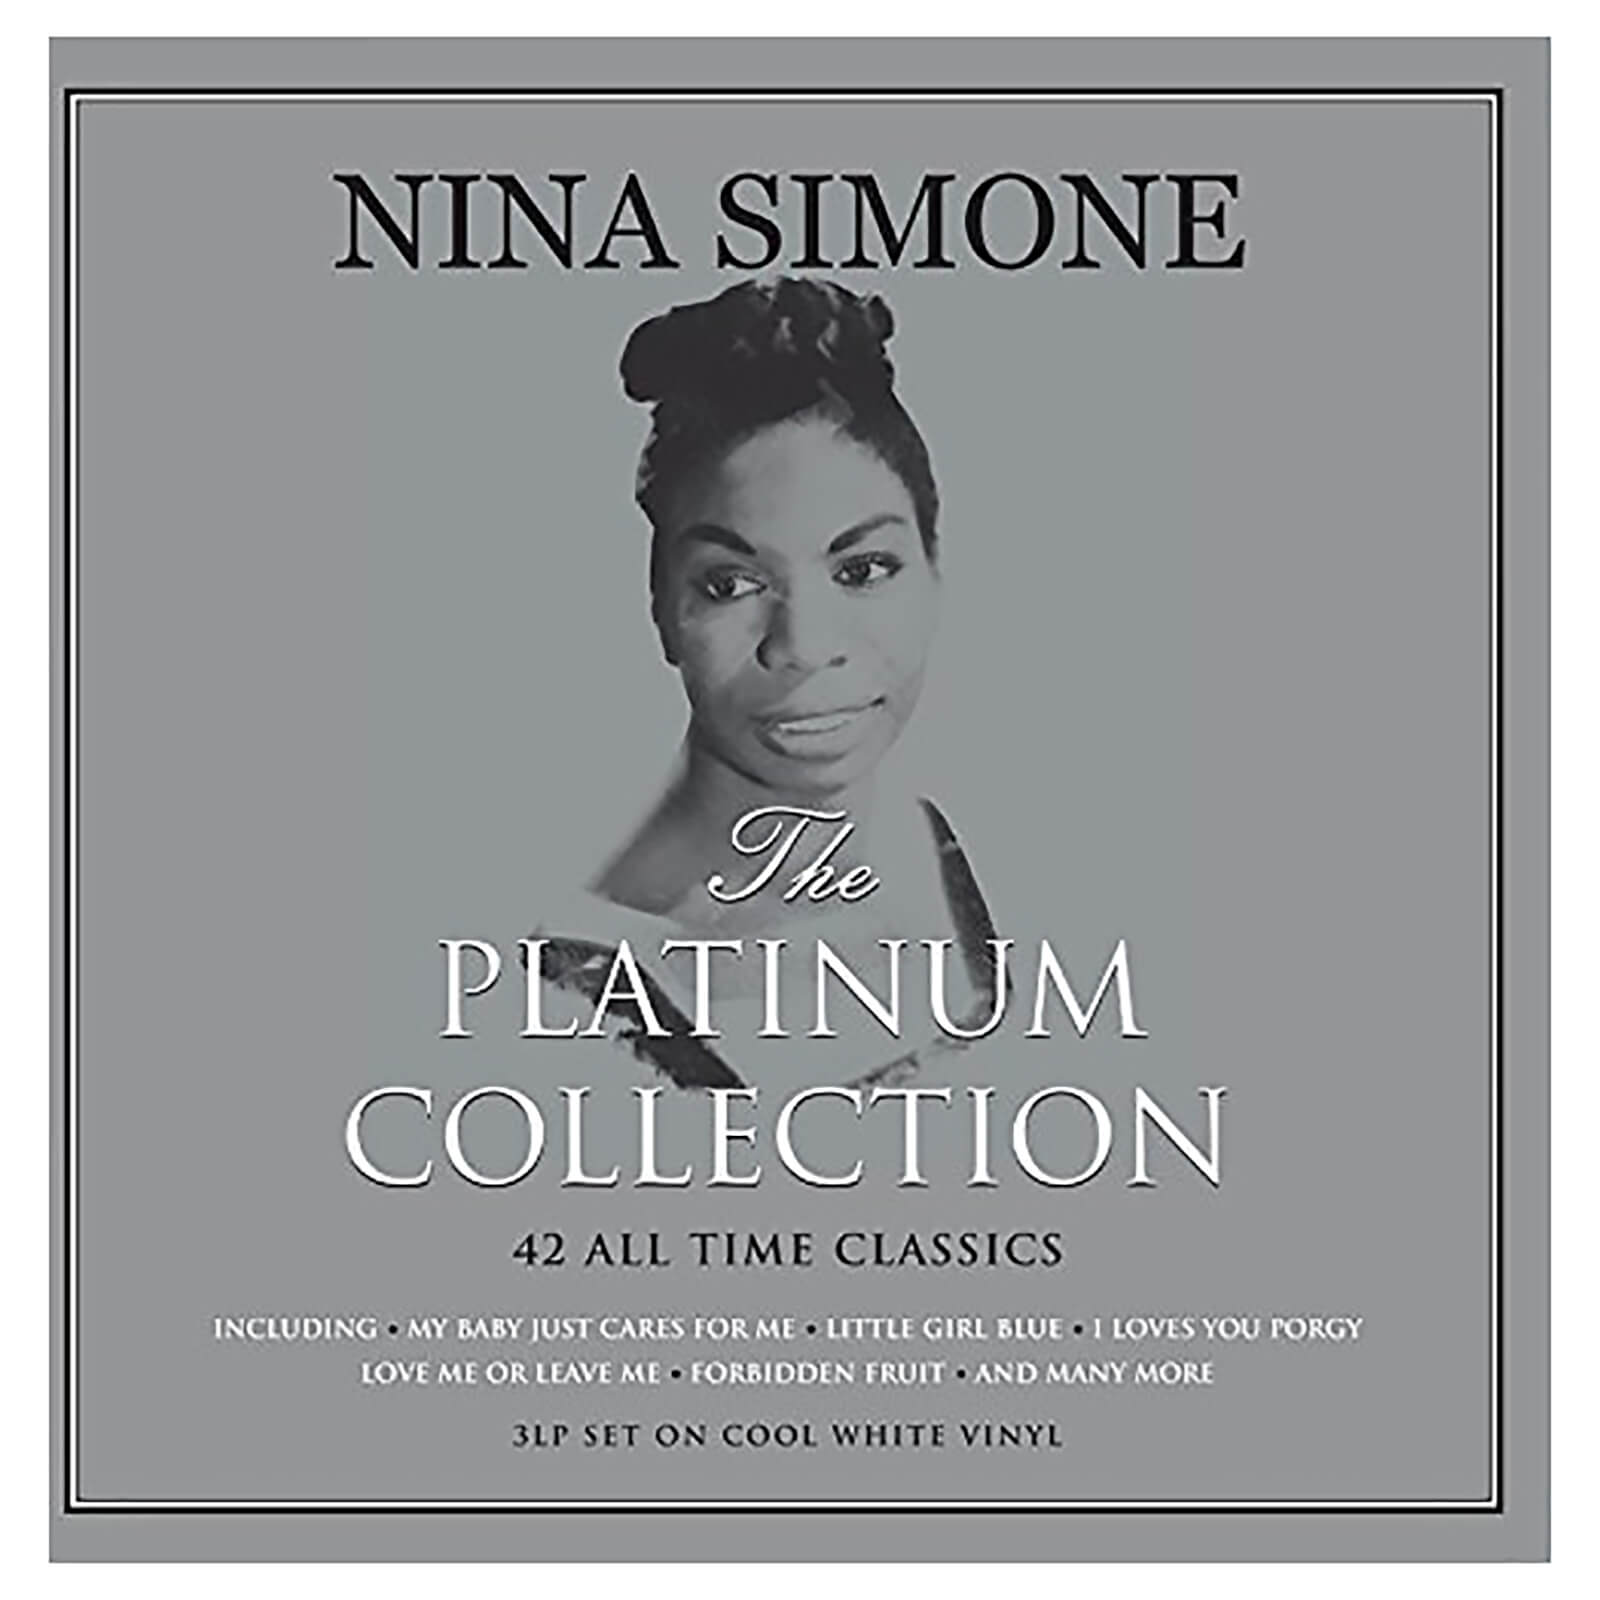 Nina Simone - Platinum Collection (White - Vinyl) - Vinyl